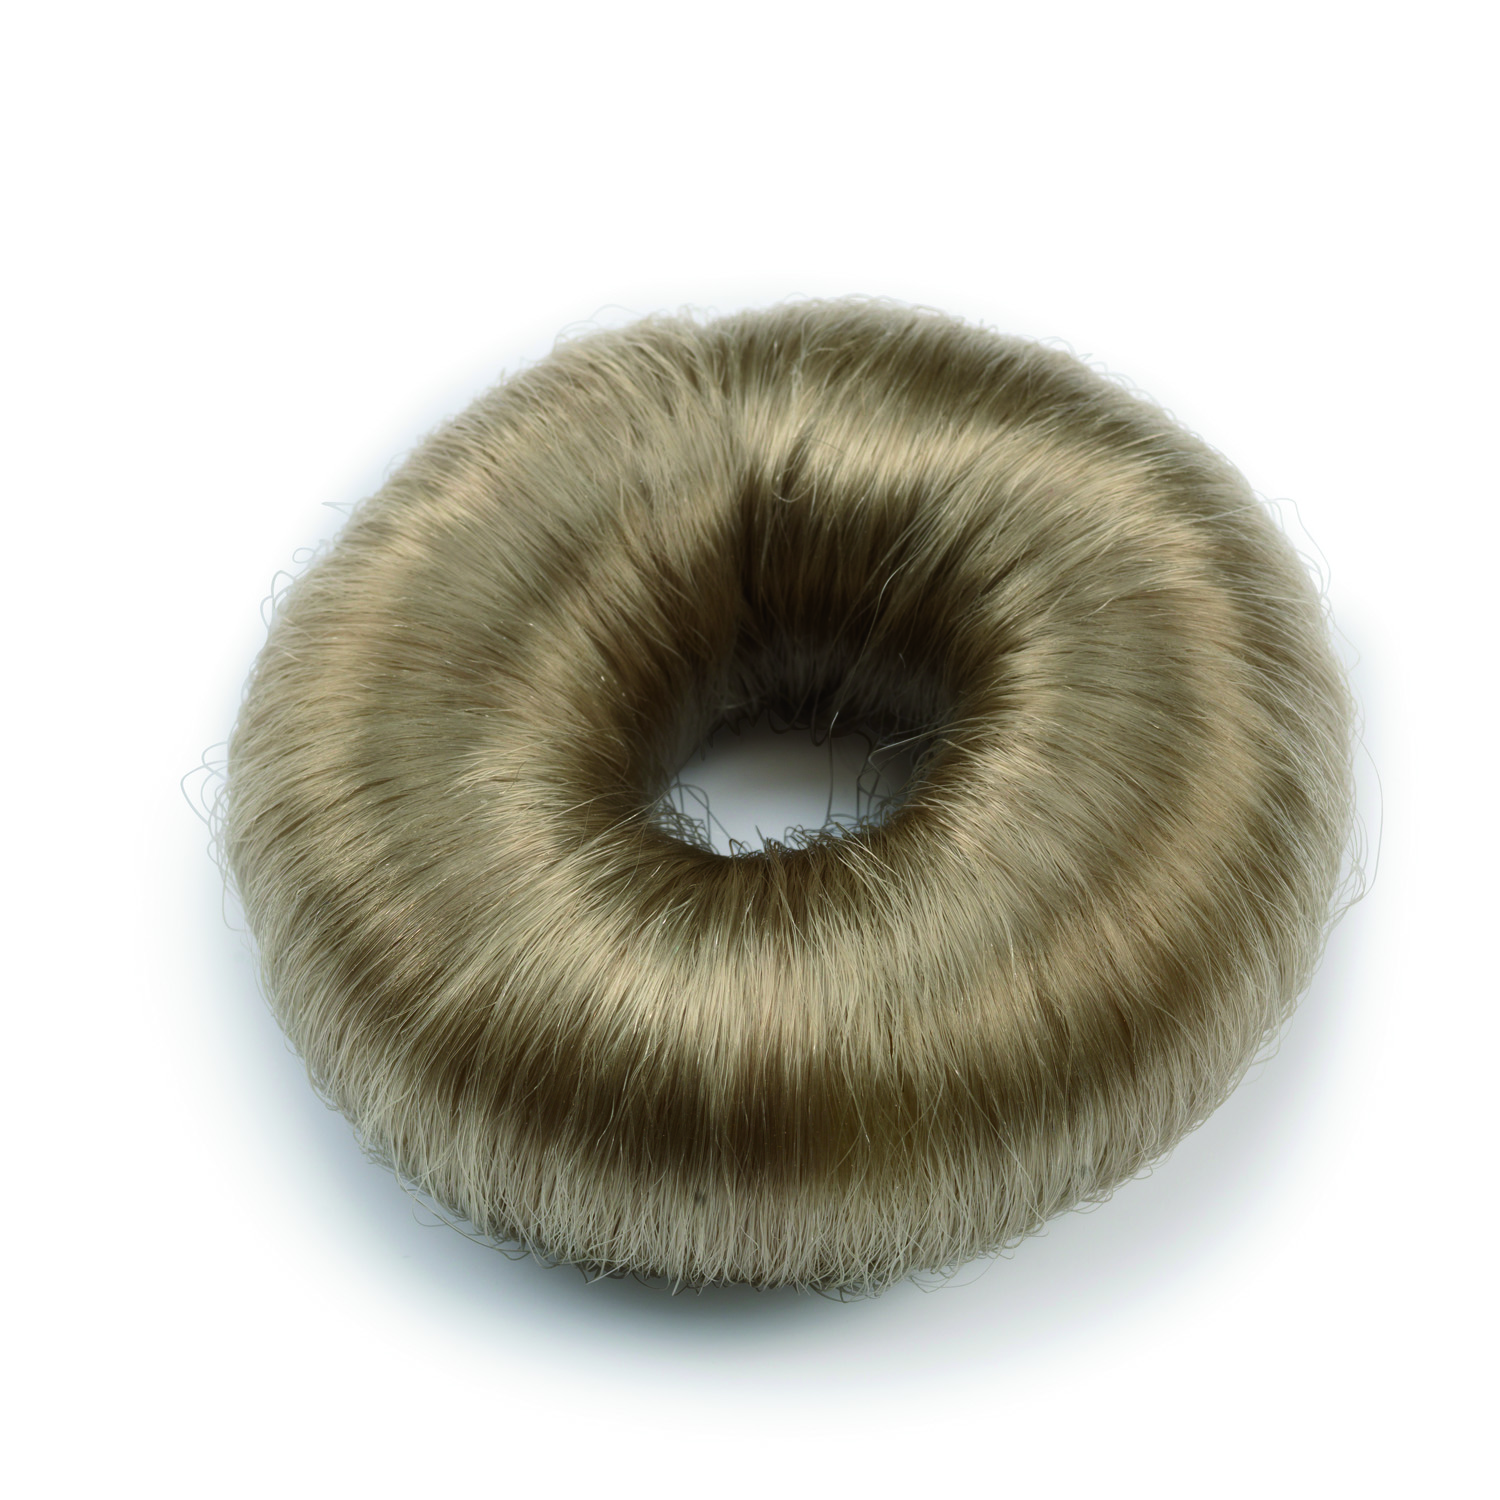 Image of Hår DONUT large blond